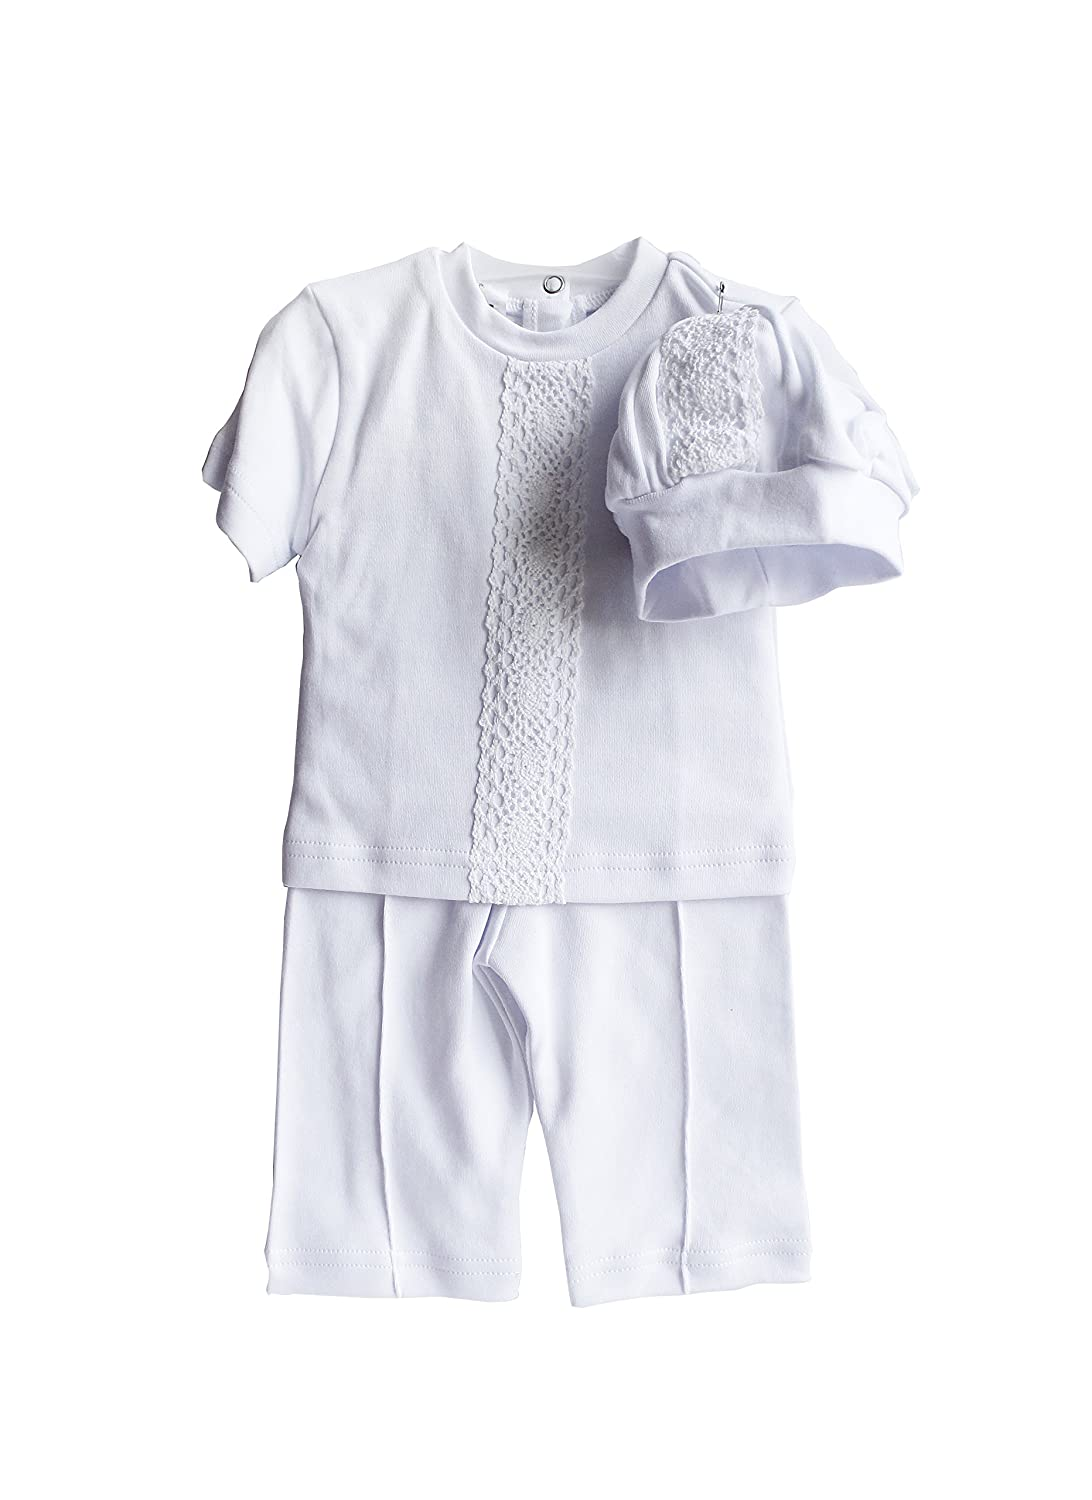 Baby Boy Suit Christening Baby Boy Outfit White Cotton Suit with Hat Three Snails